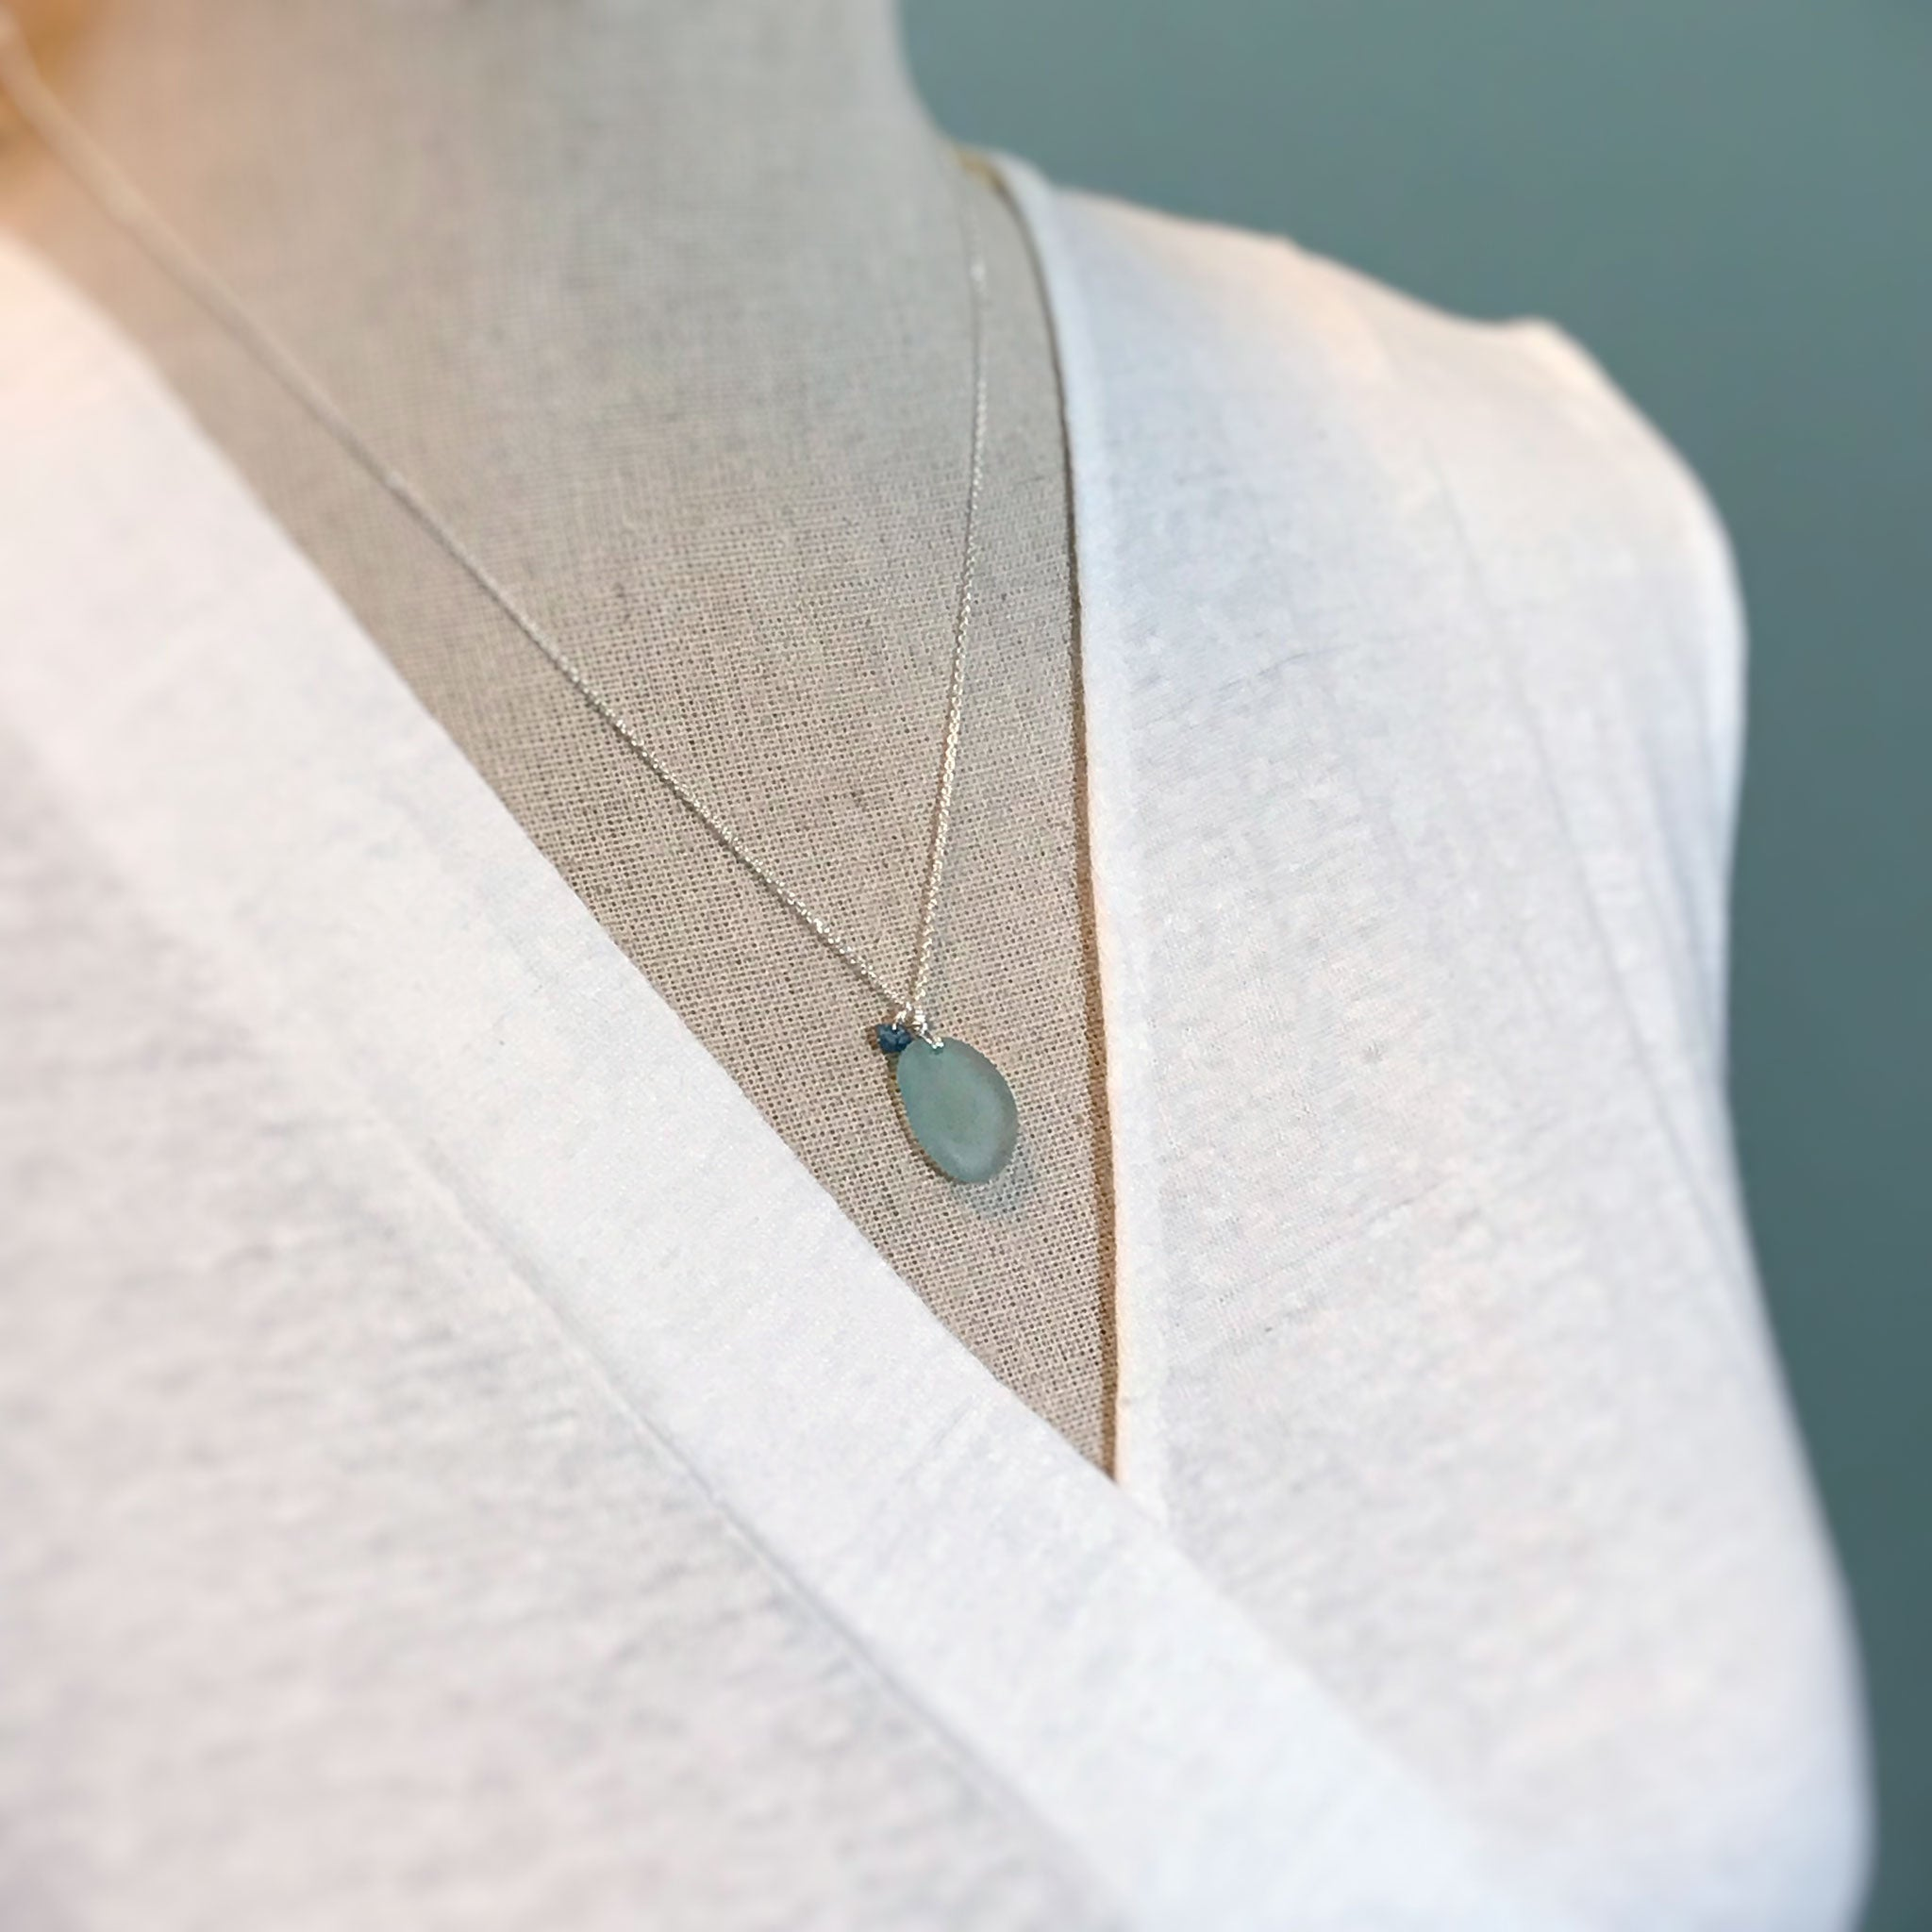 French Blue Sea Glass Necklace with Blue Rough-cut Diamond